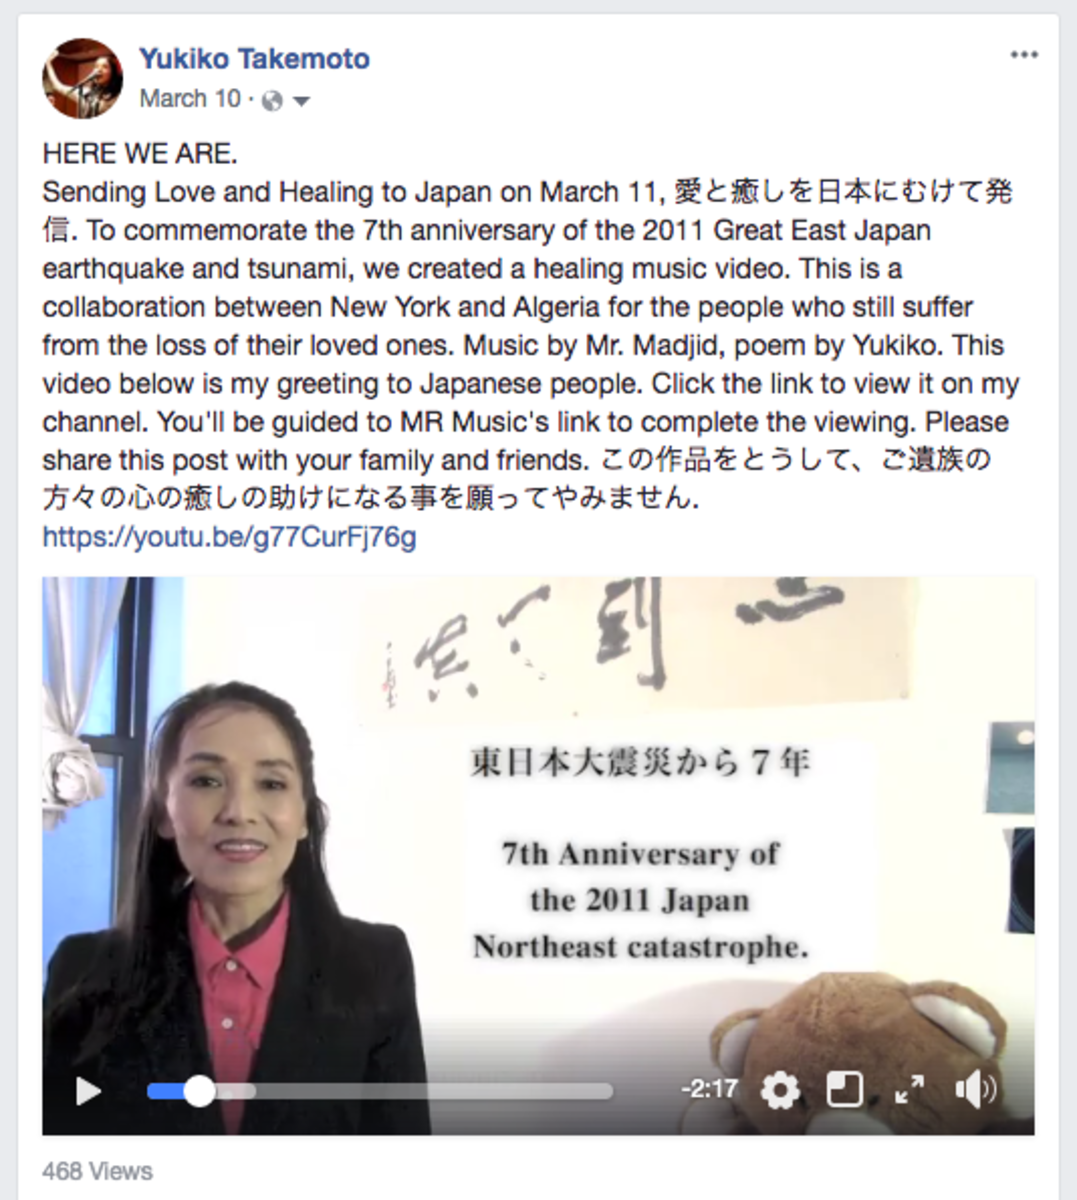 7th-year-anniversary-of-the-2011-japan-earthquake-and-tsunami-my-quest-for-healing-lead-to-a-music-video-collaboration